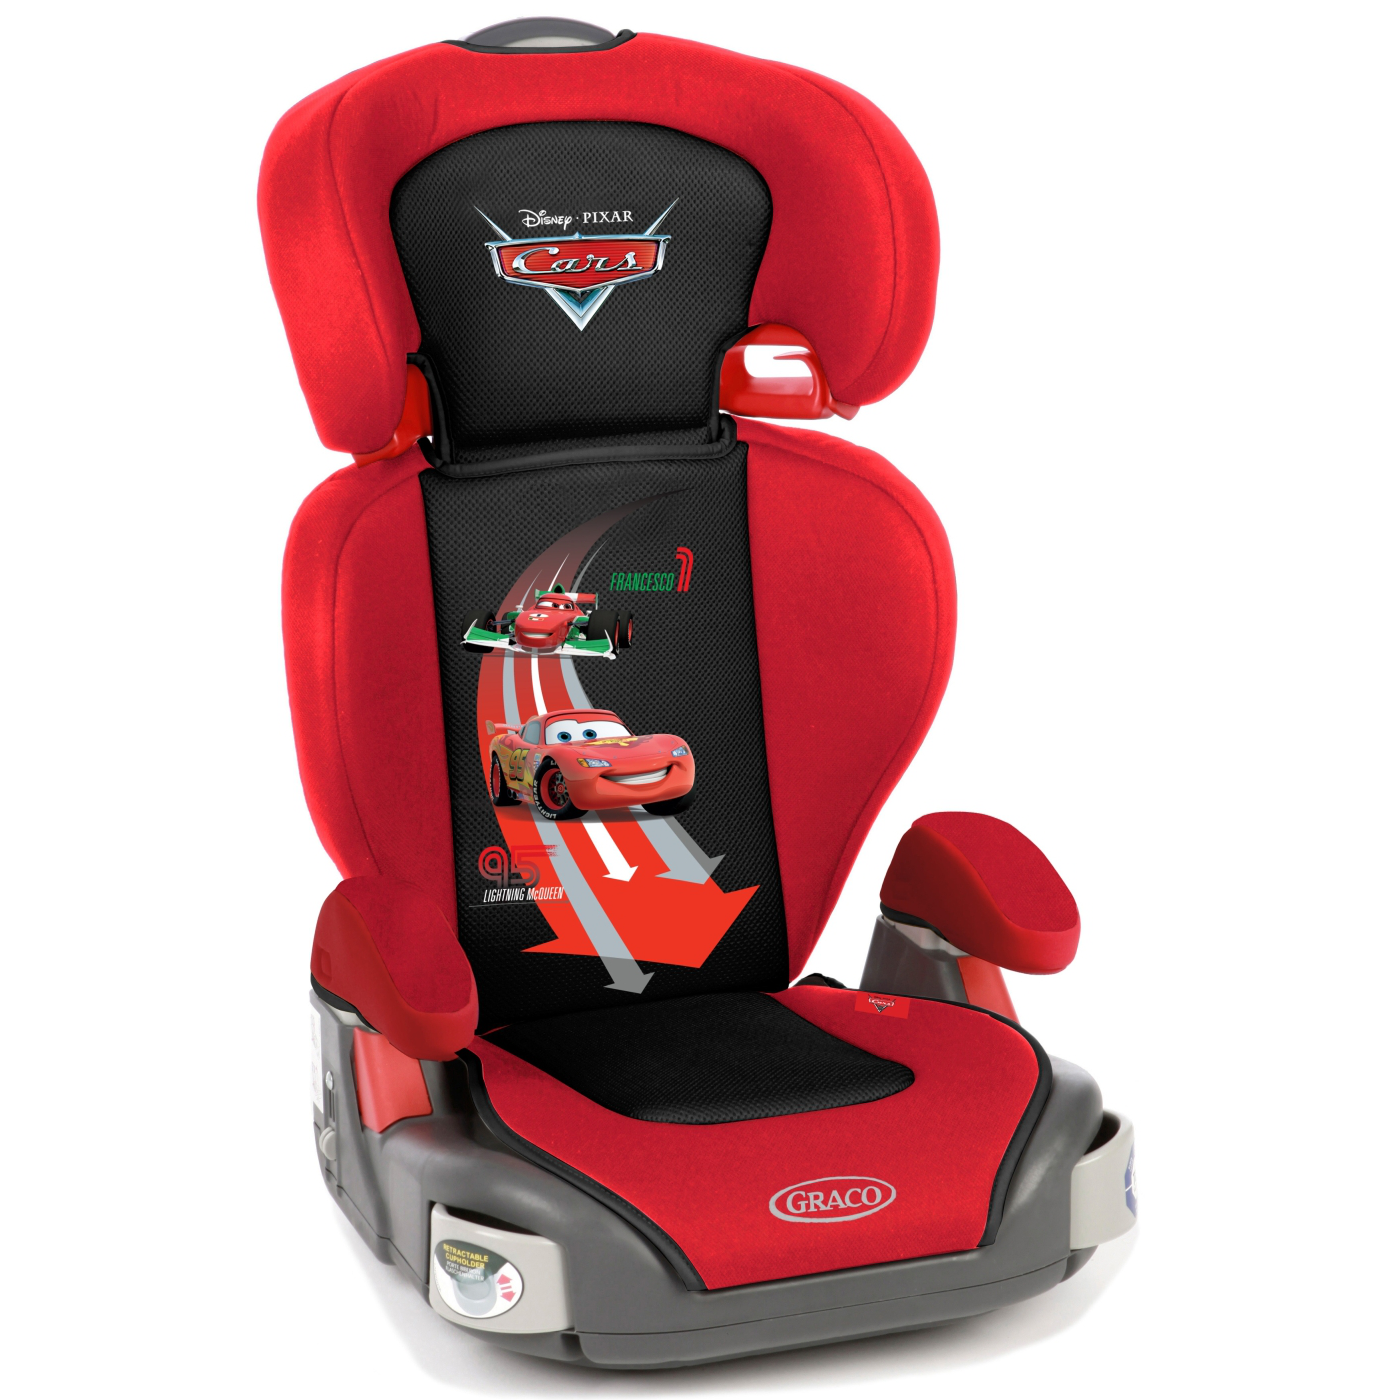 ���������� Graco Junior Maxi Plus Disney racing rivals